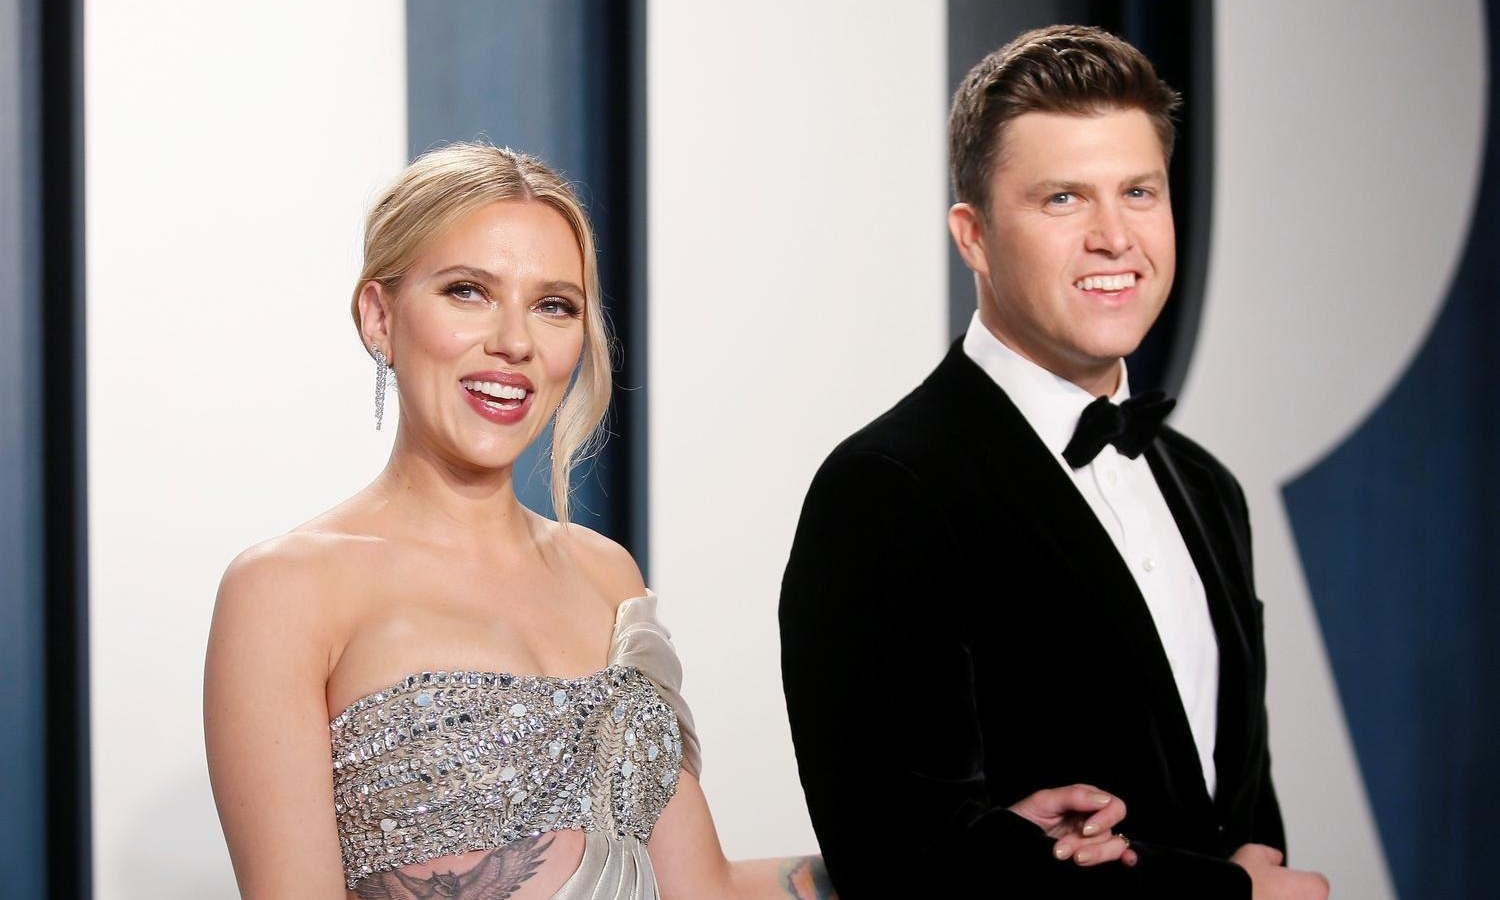 Scarlett Johansson ties knot with comedian Colin Jost in a lowkey ceremony